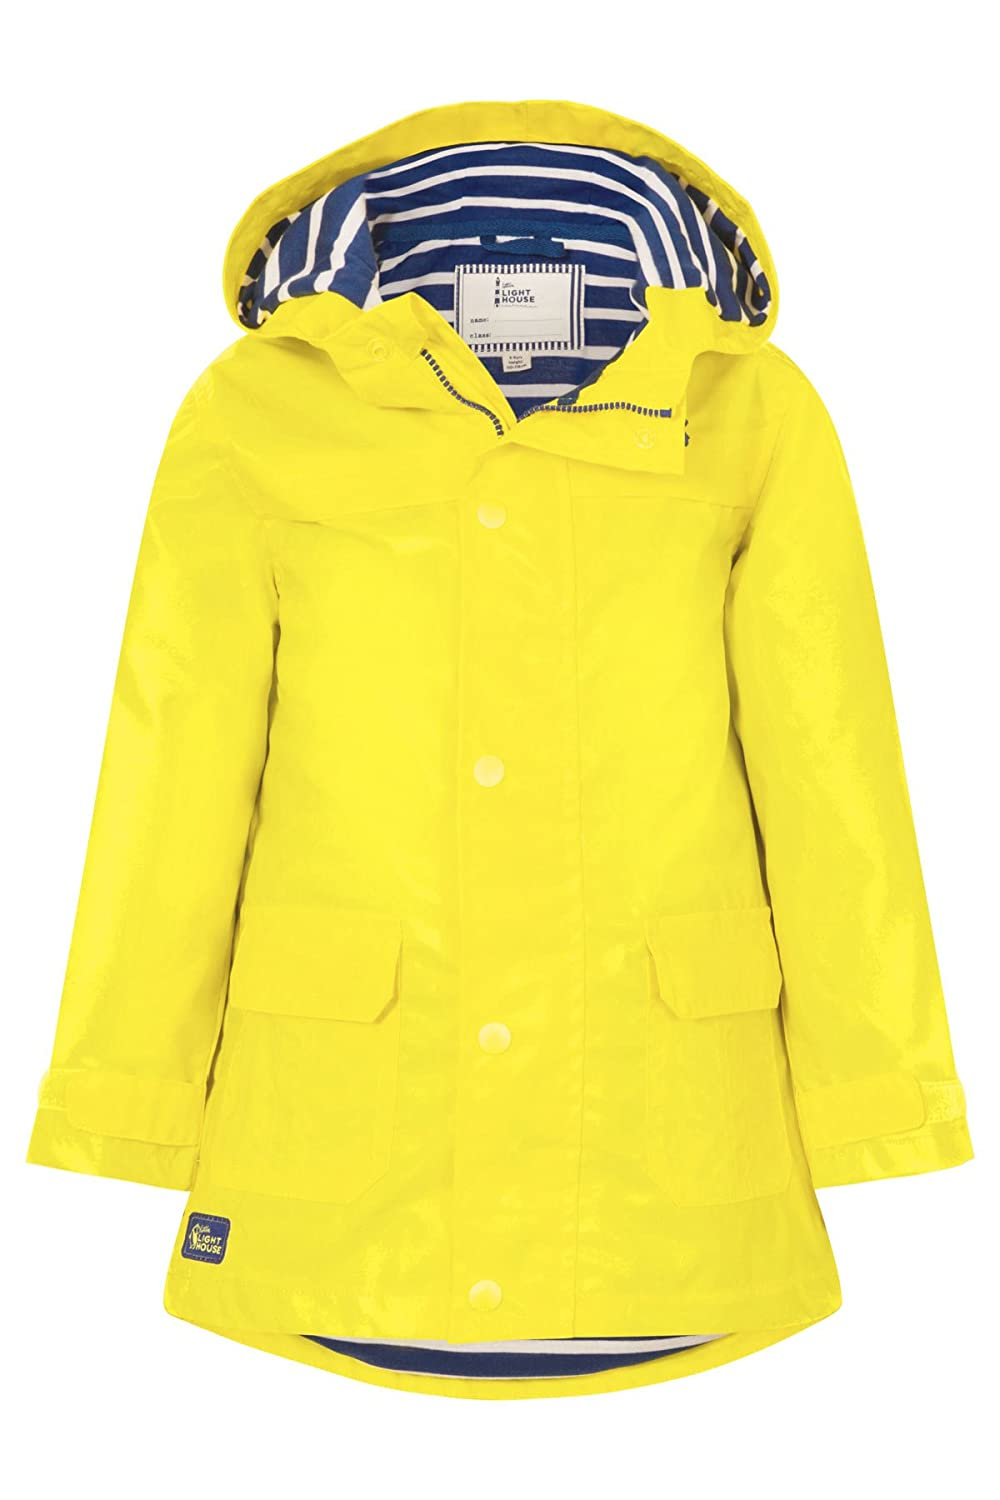 LightHouse Boy's Sailor Rubber Rain Coat 8942807826